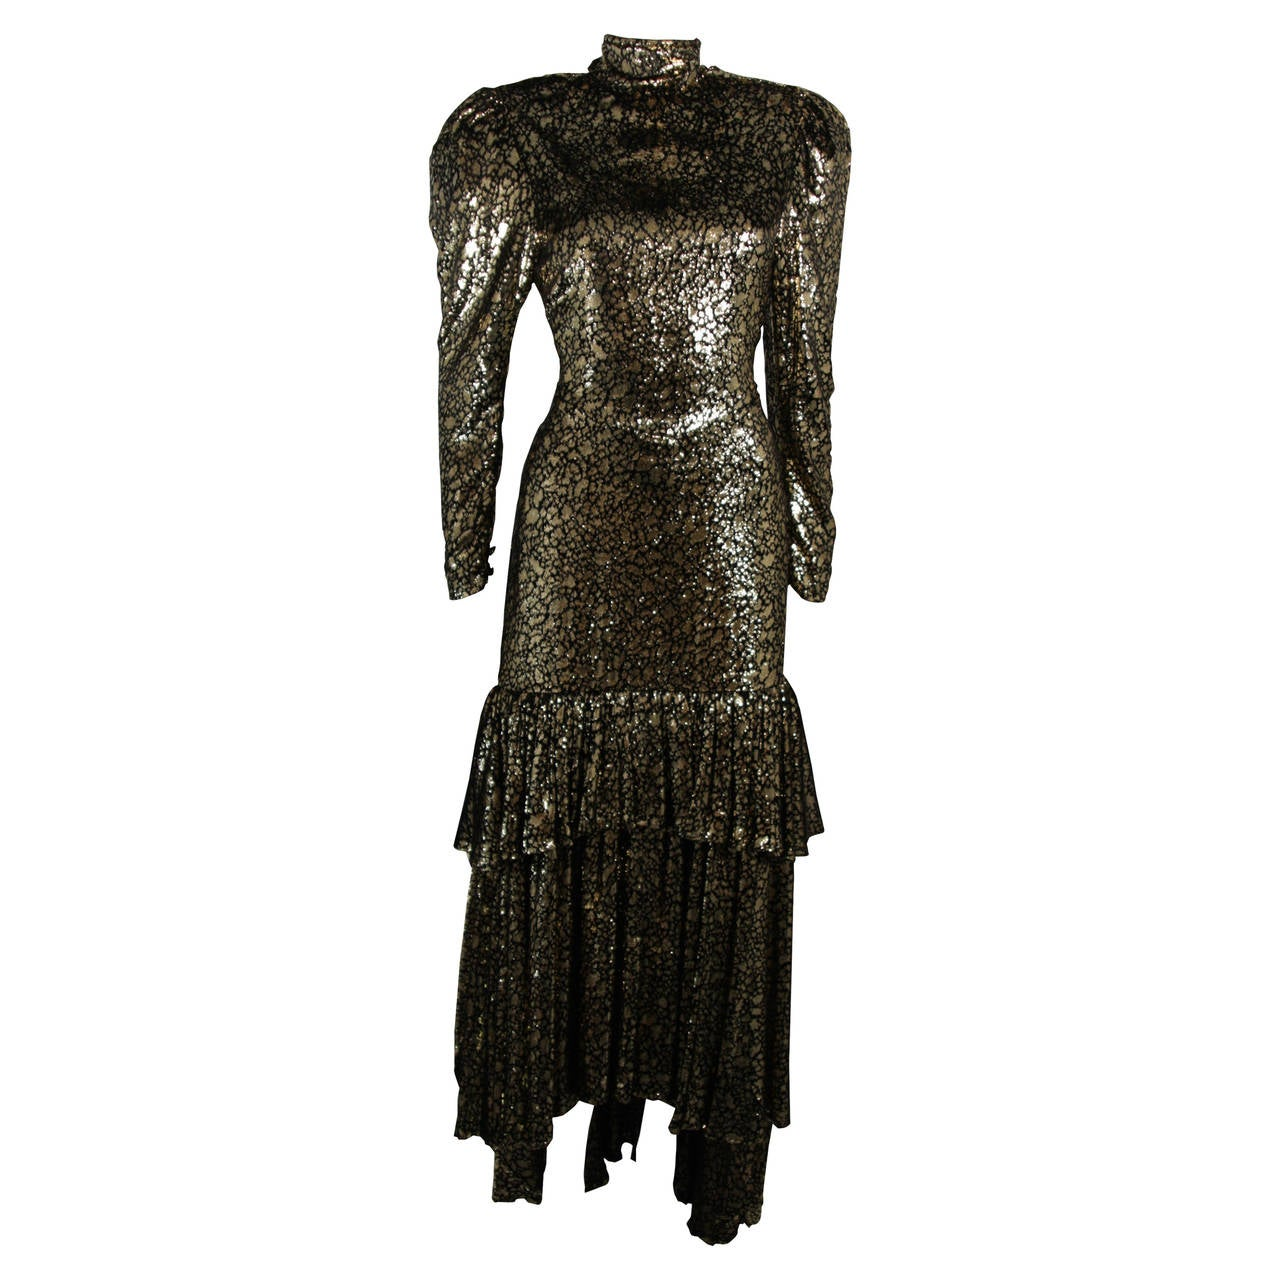 Sonia Rykiel Black and Gold Metallic Accented Tiered Gown Size Small